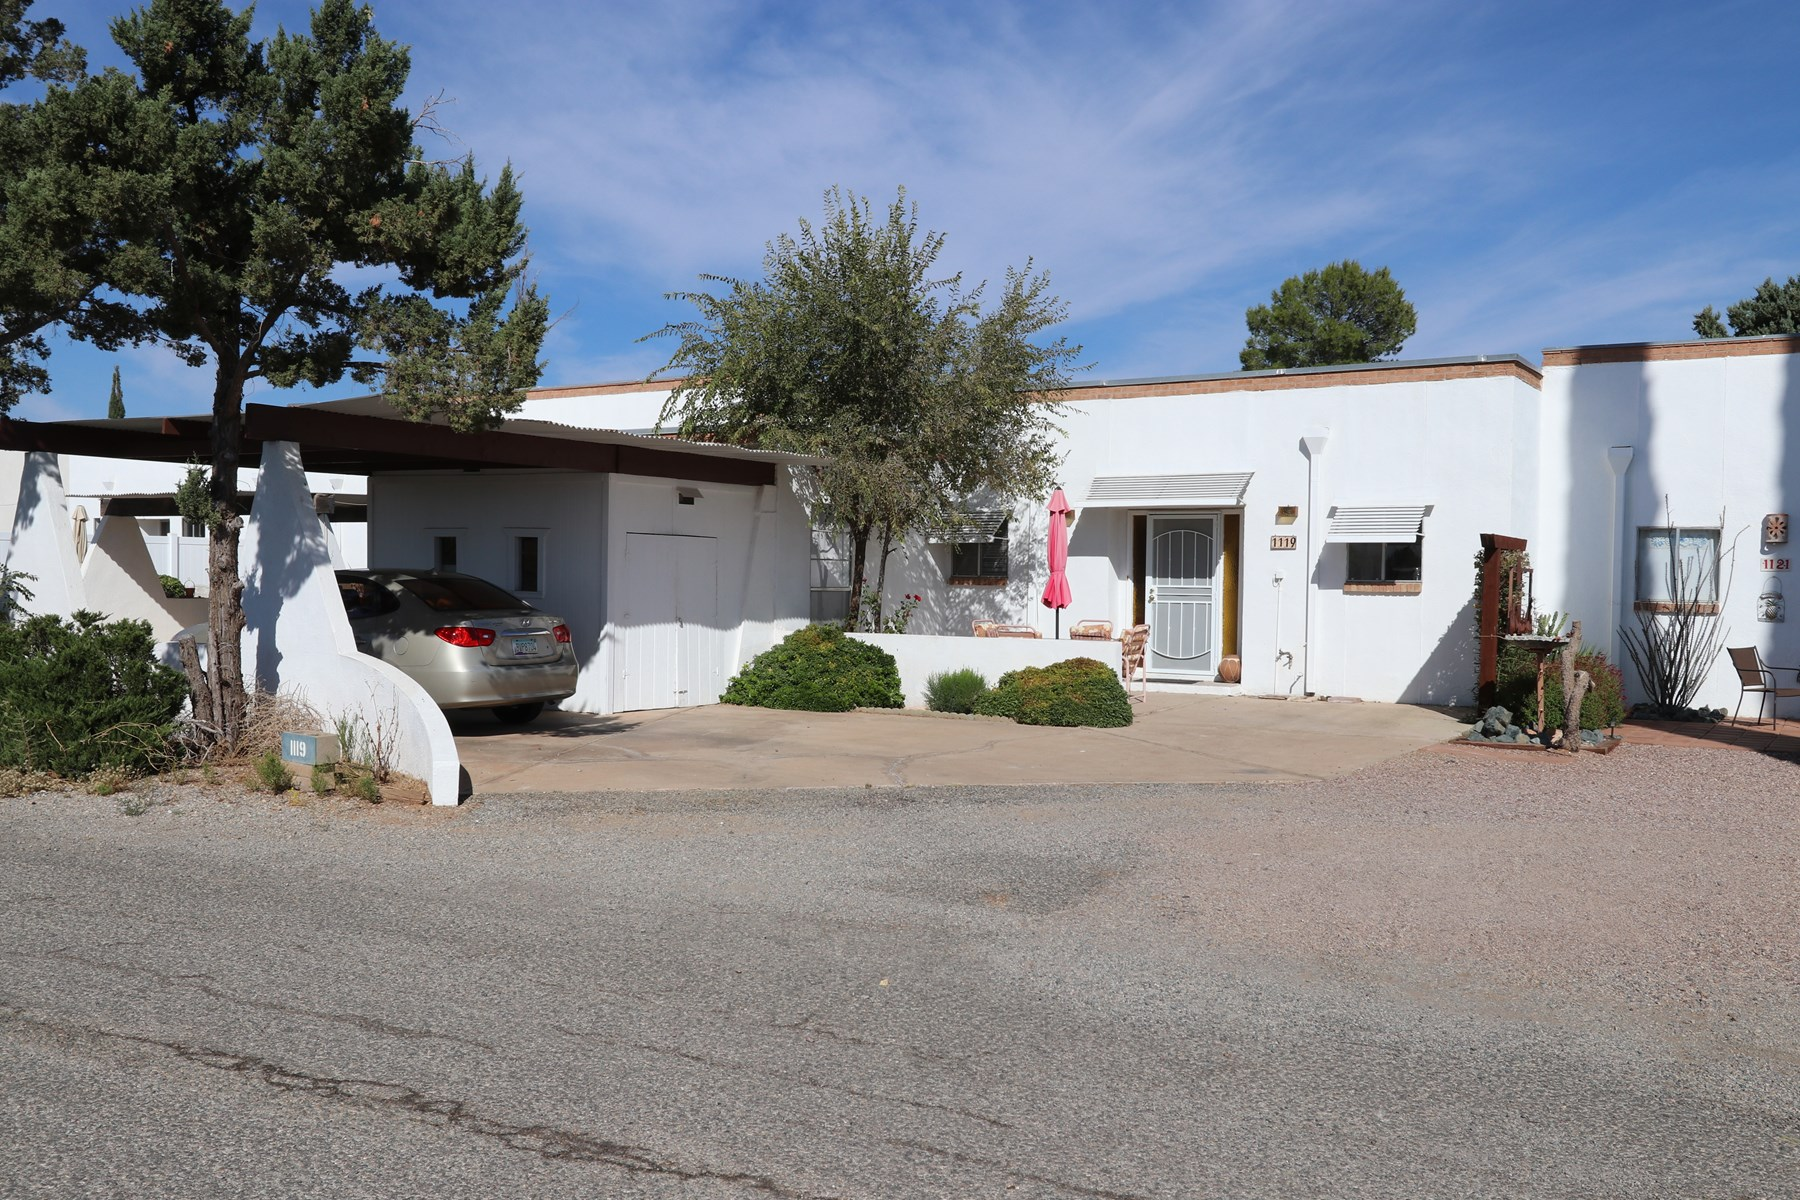 Awesome 3br 2ba Townhouse in Pearce AZ!